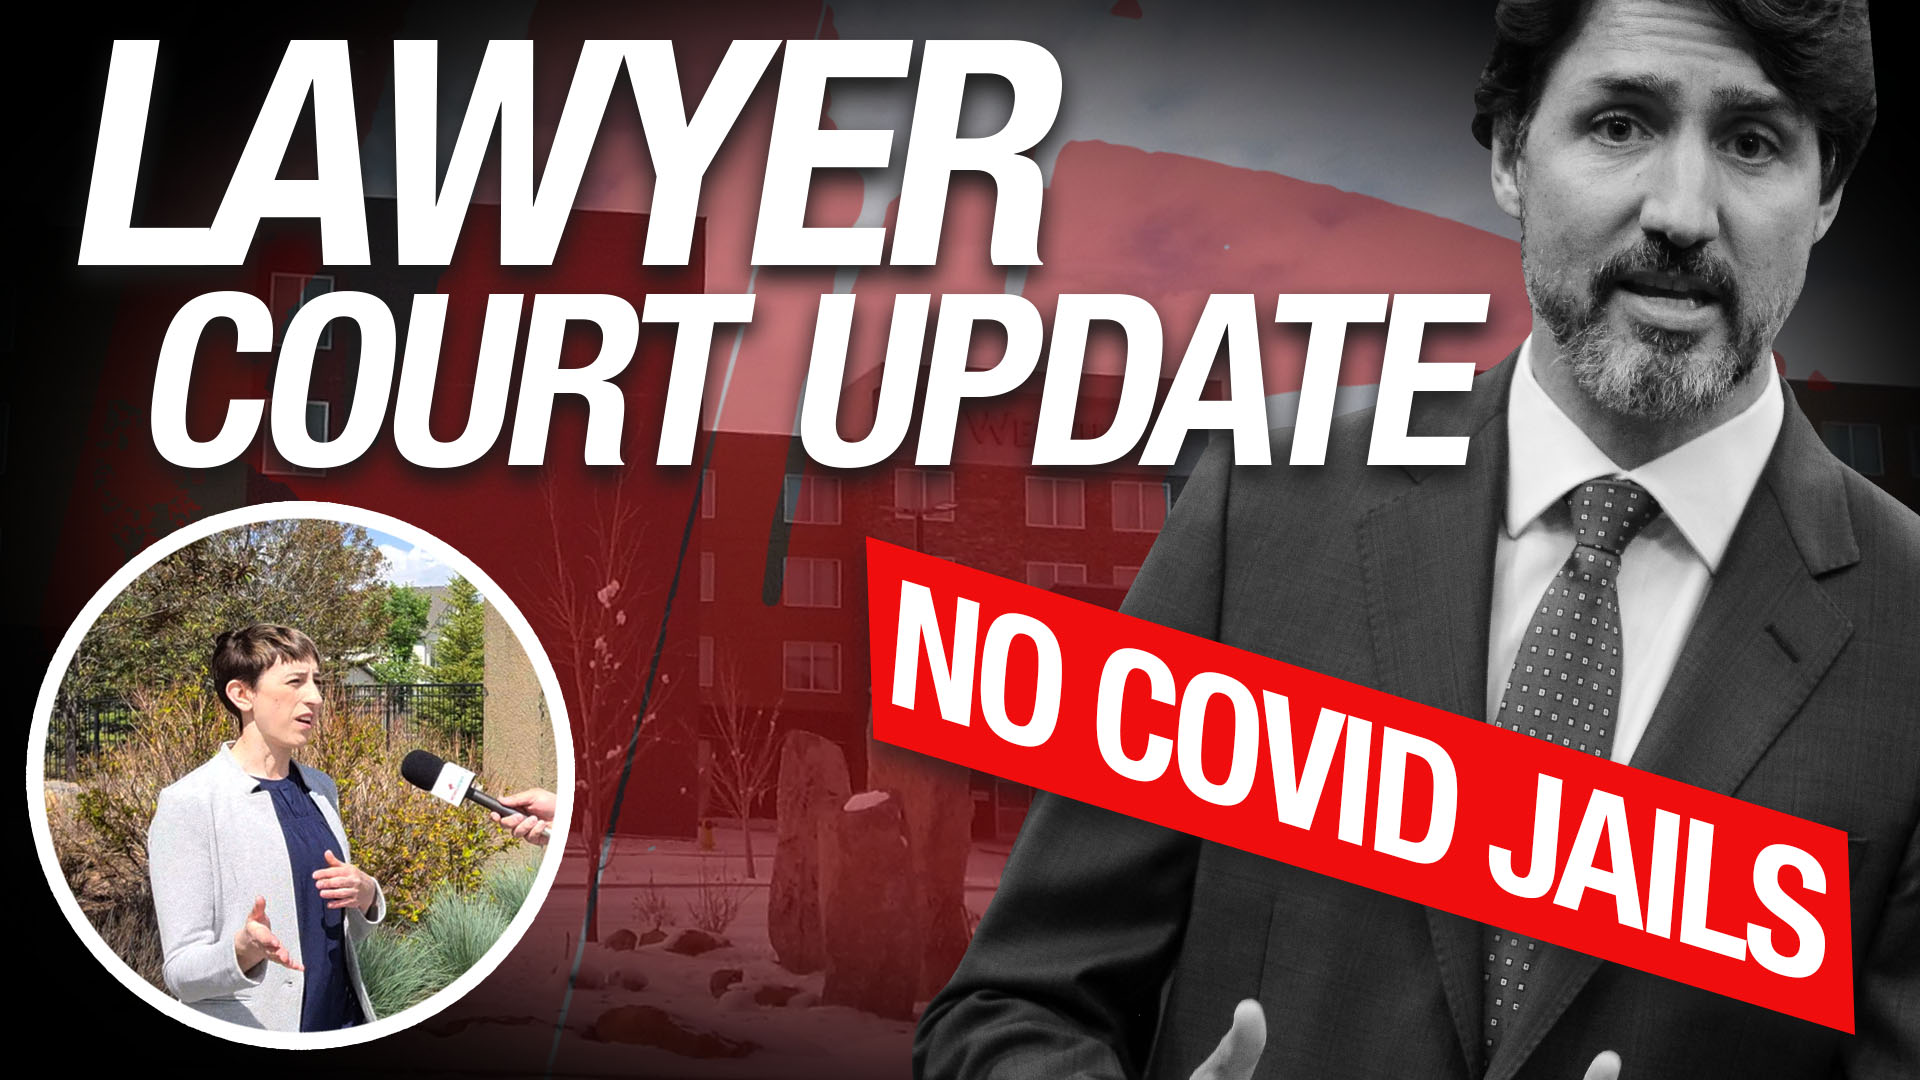 Update: Rebel News lawyer on legal challenge against COVID jails